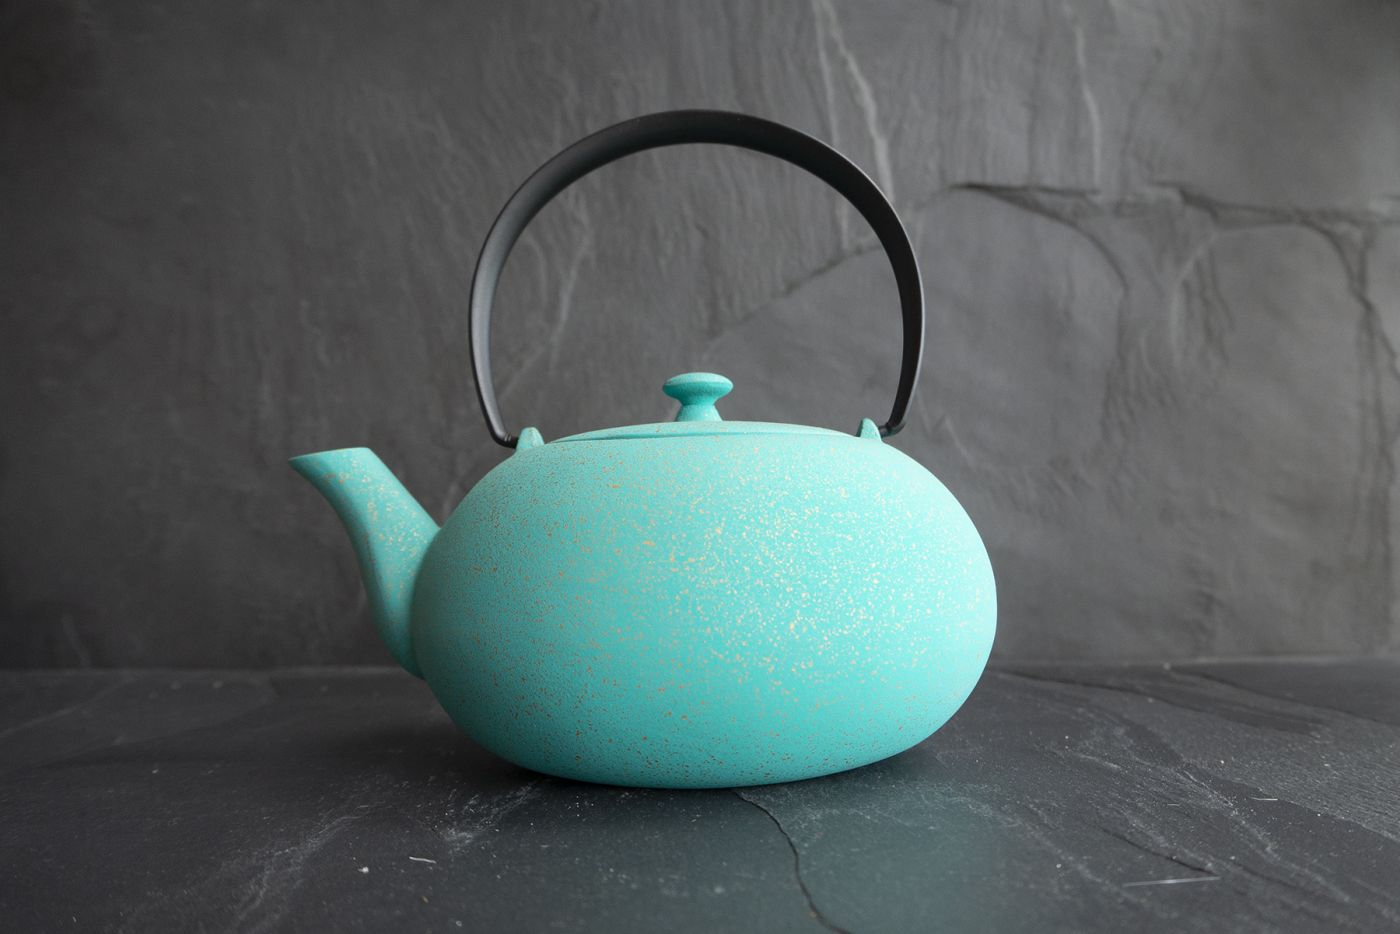 Wazuqu Turkish Blue/Gold Japanese Cast Iron Teapot 0.55L